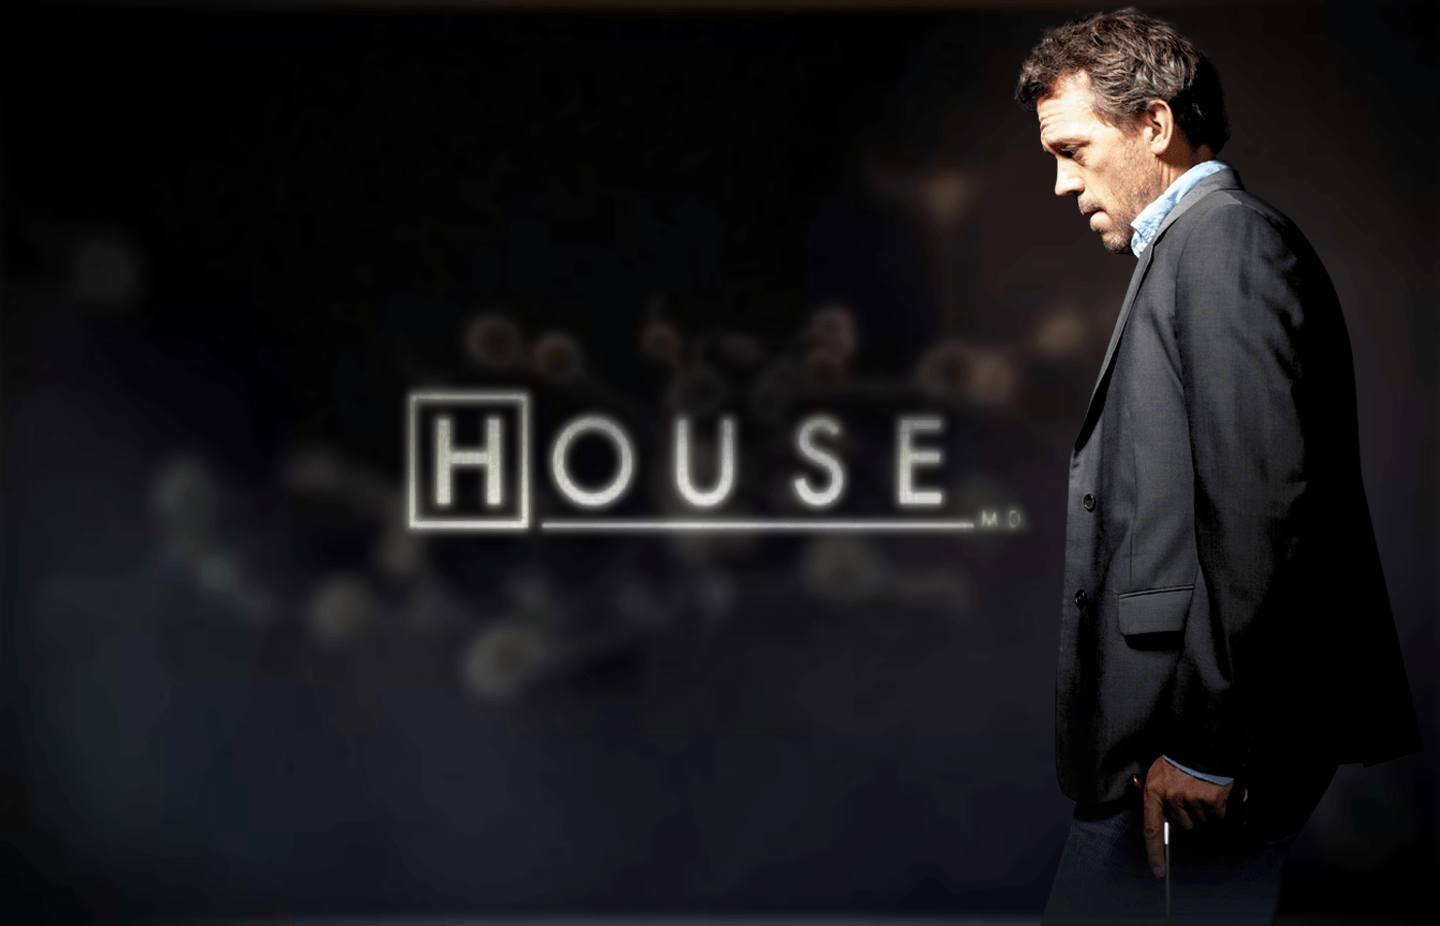 House M.D. Wallpaper 2 by Prox1ma on DeviantArt